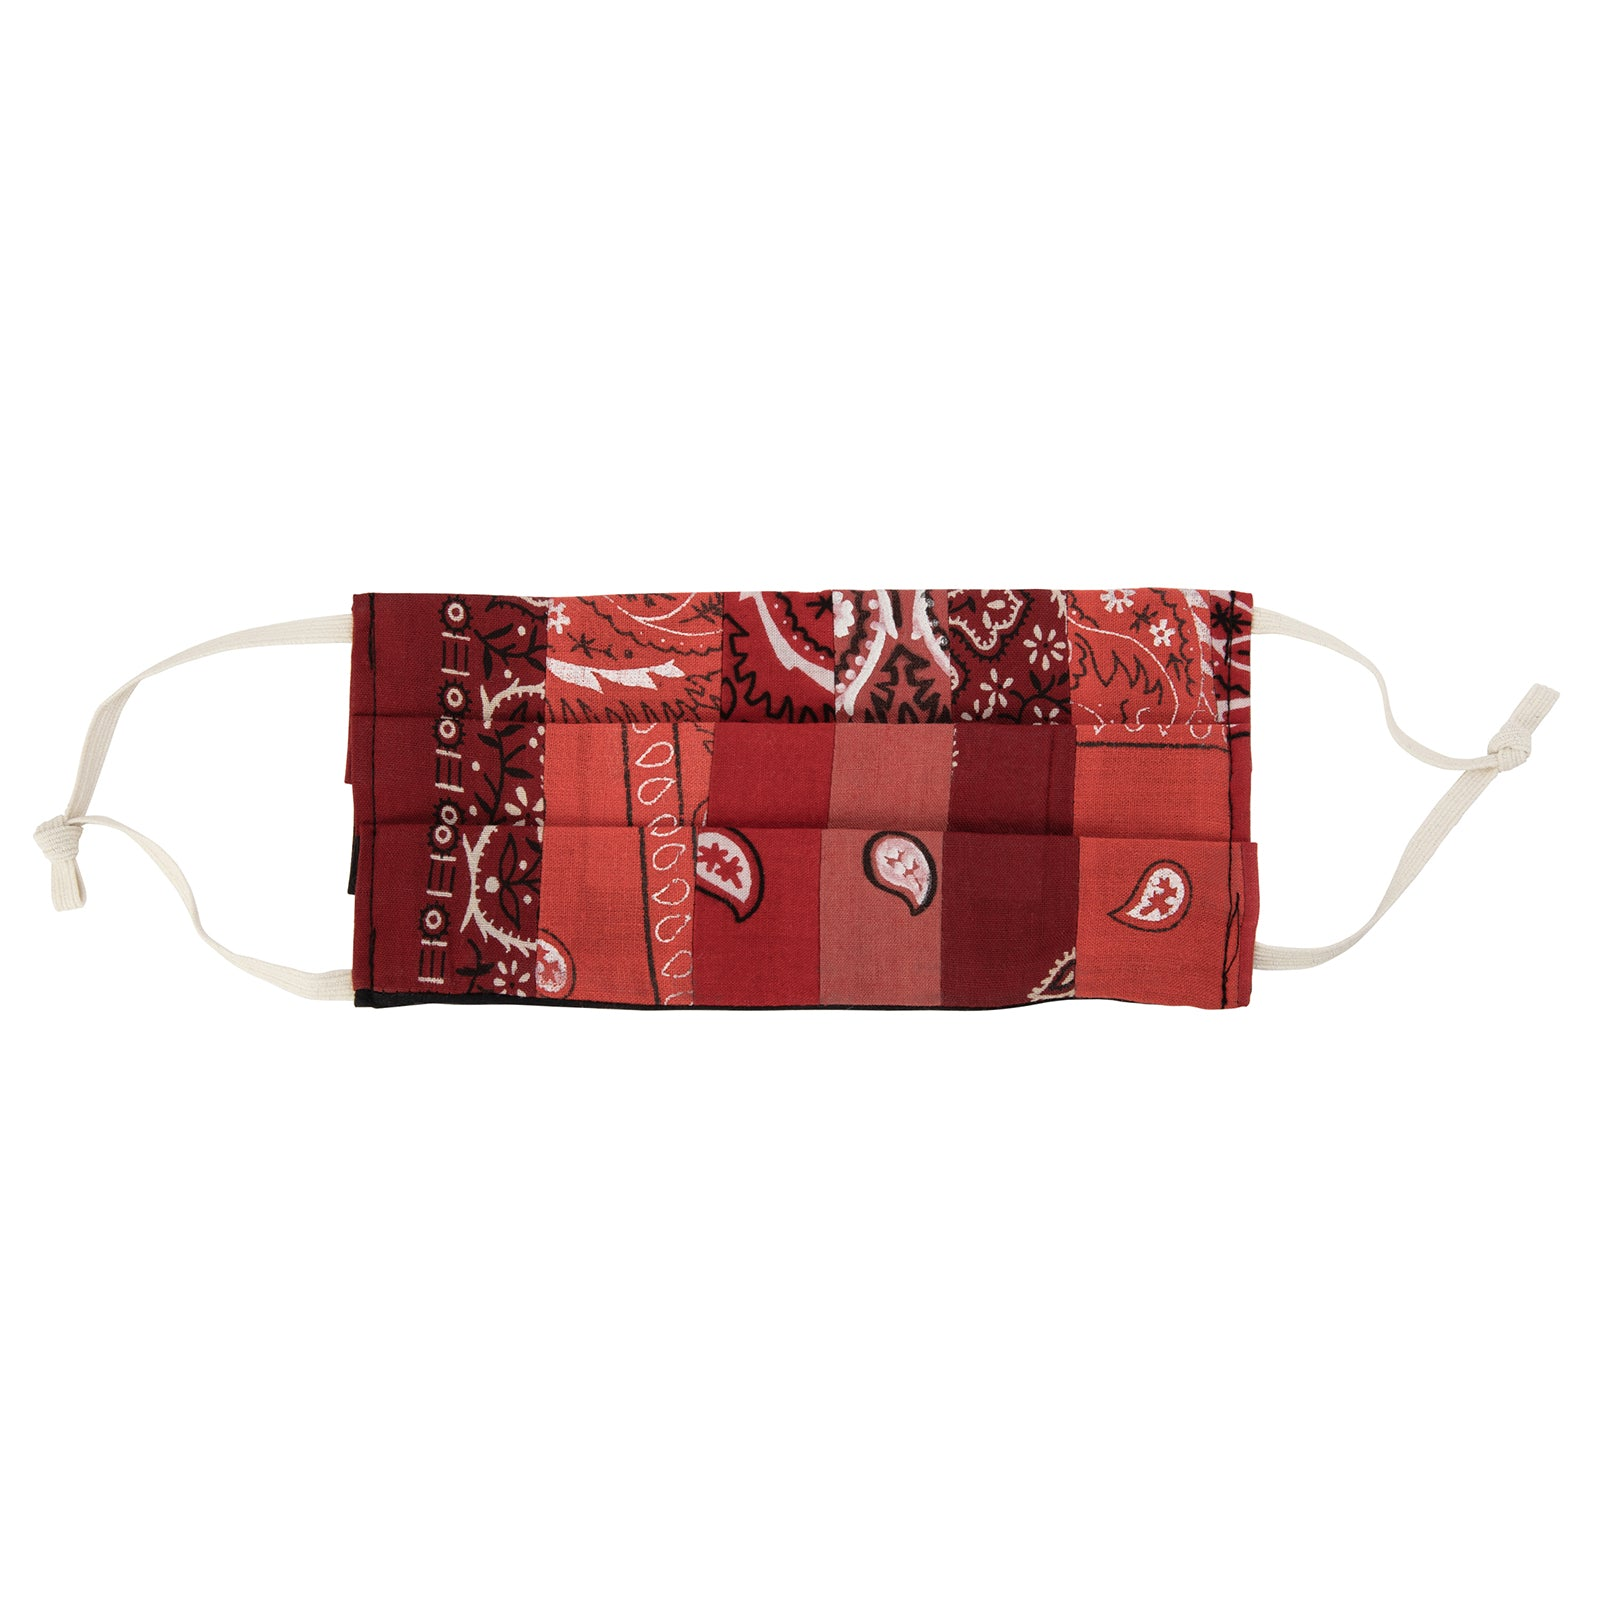 Fraction LA Bandana Face Mask - Red - Accessories - Broken English Jewelry